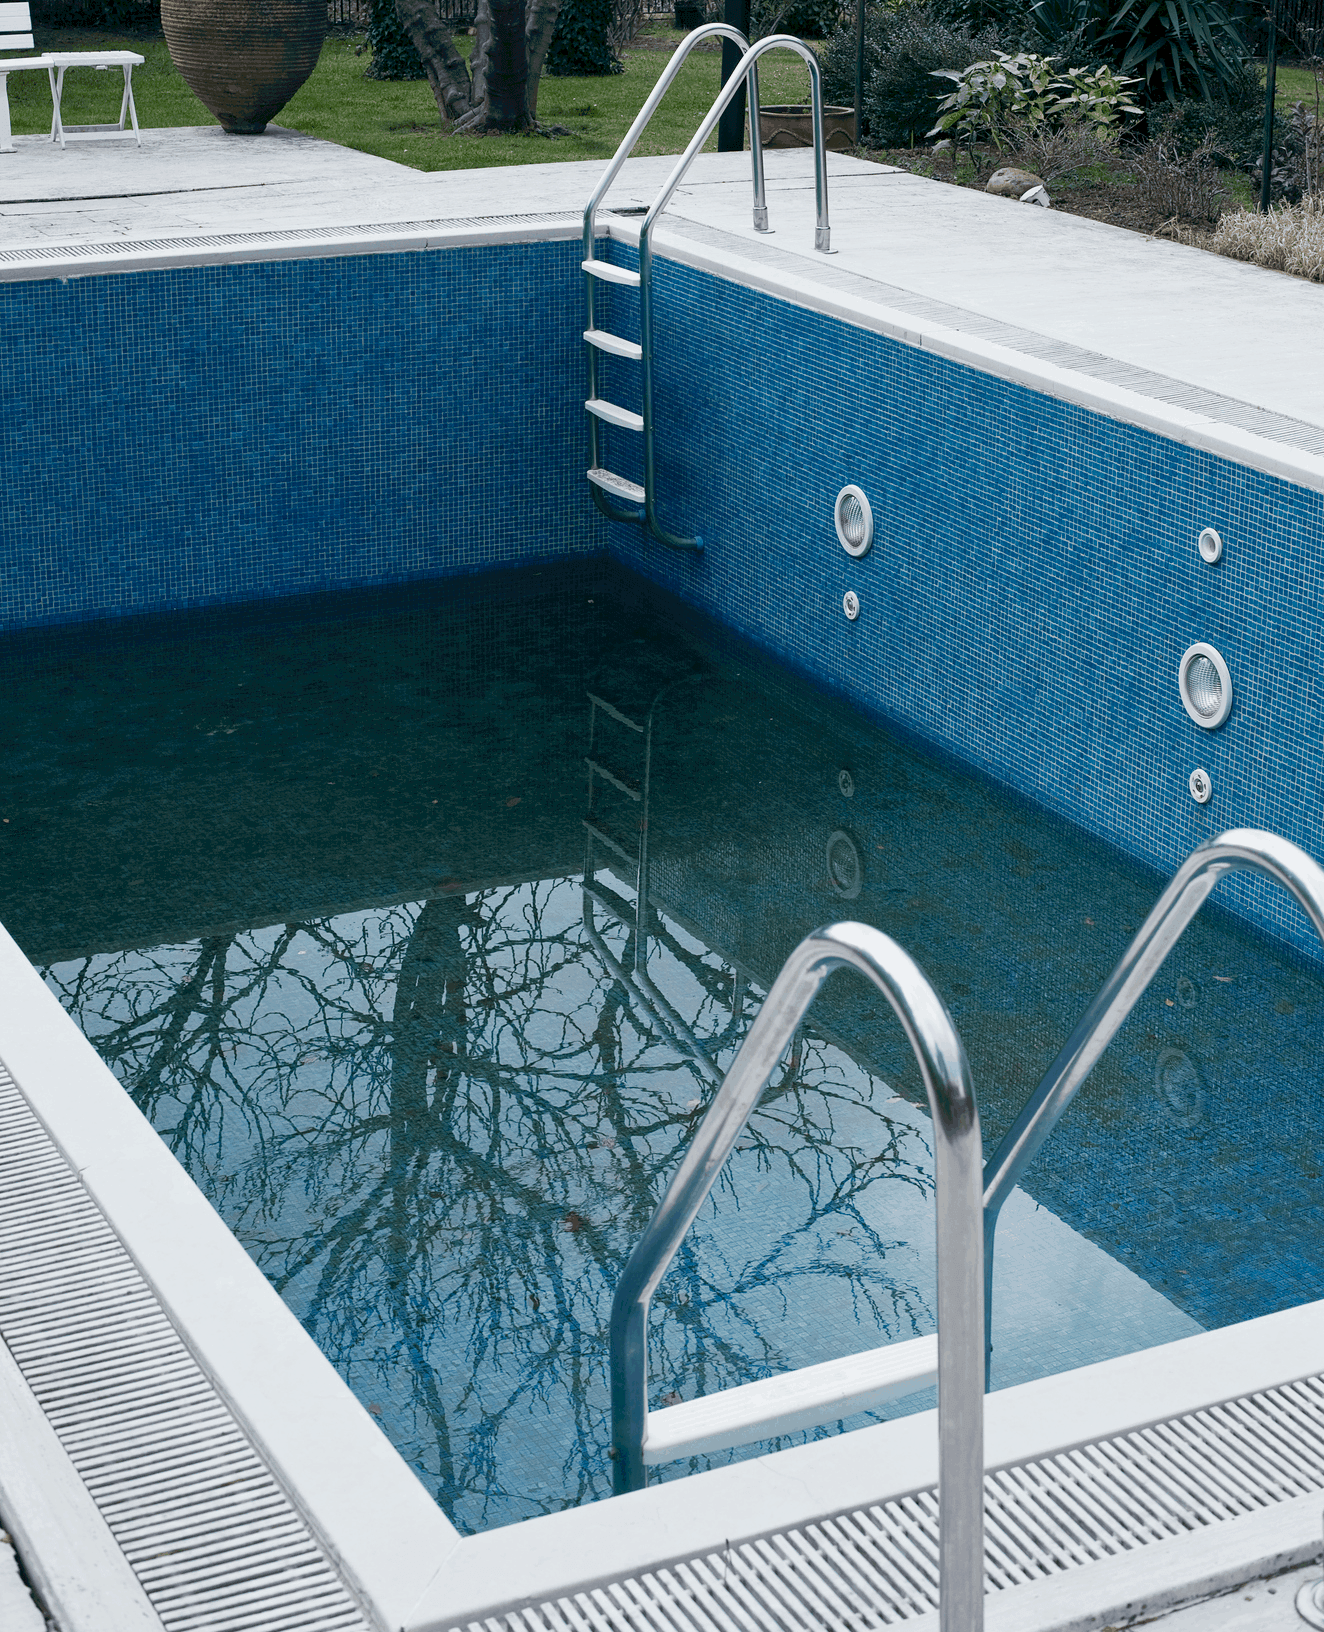 Pool leak detection Gardenvale